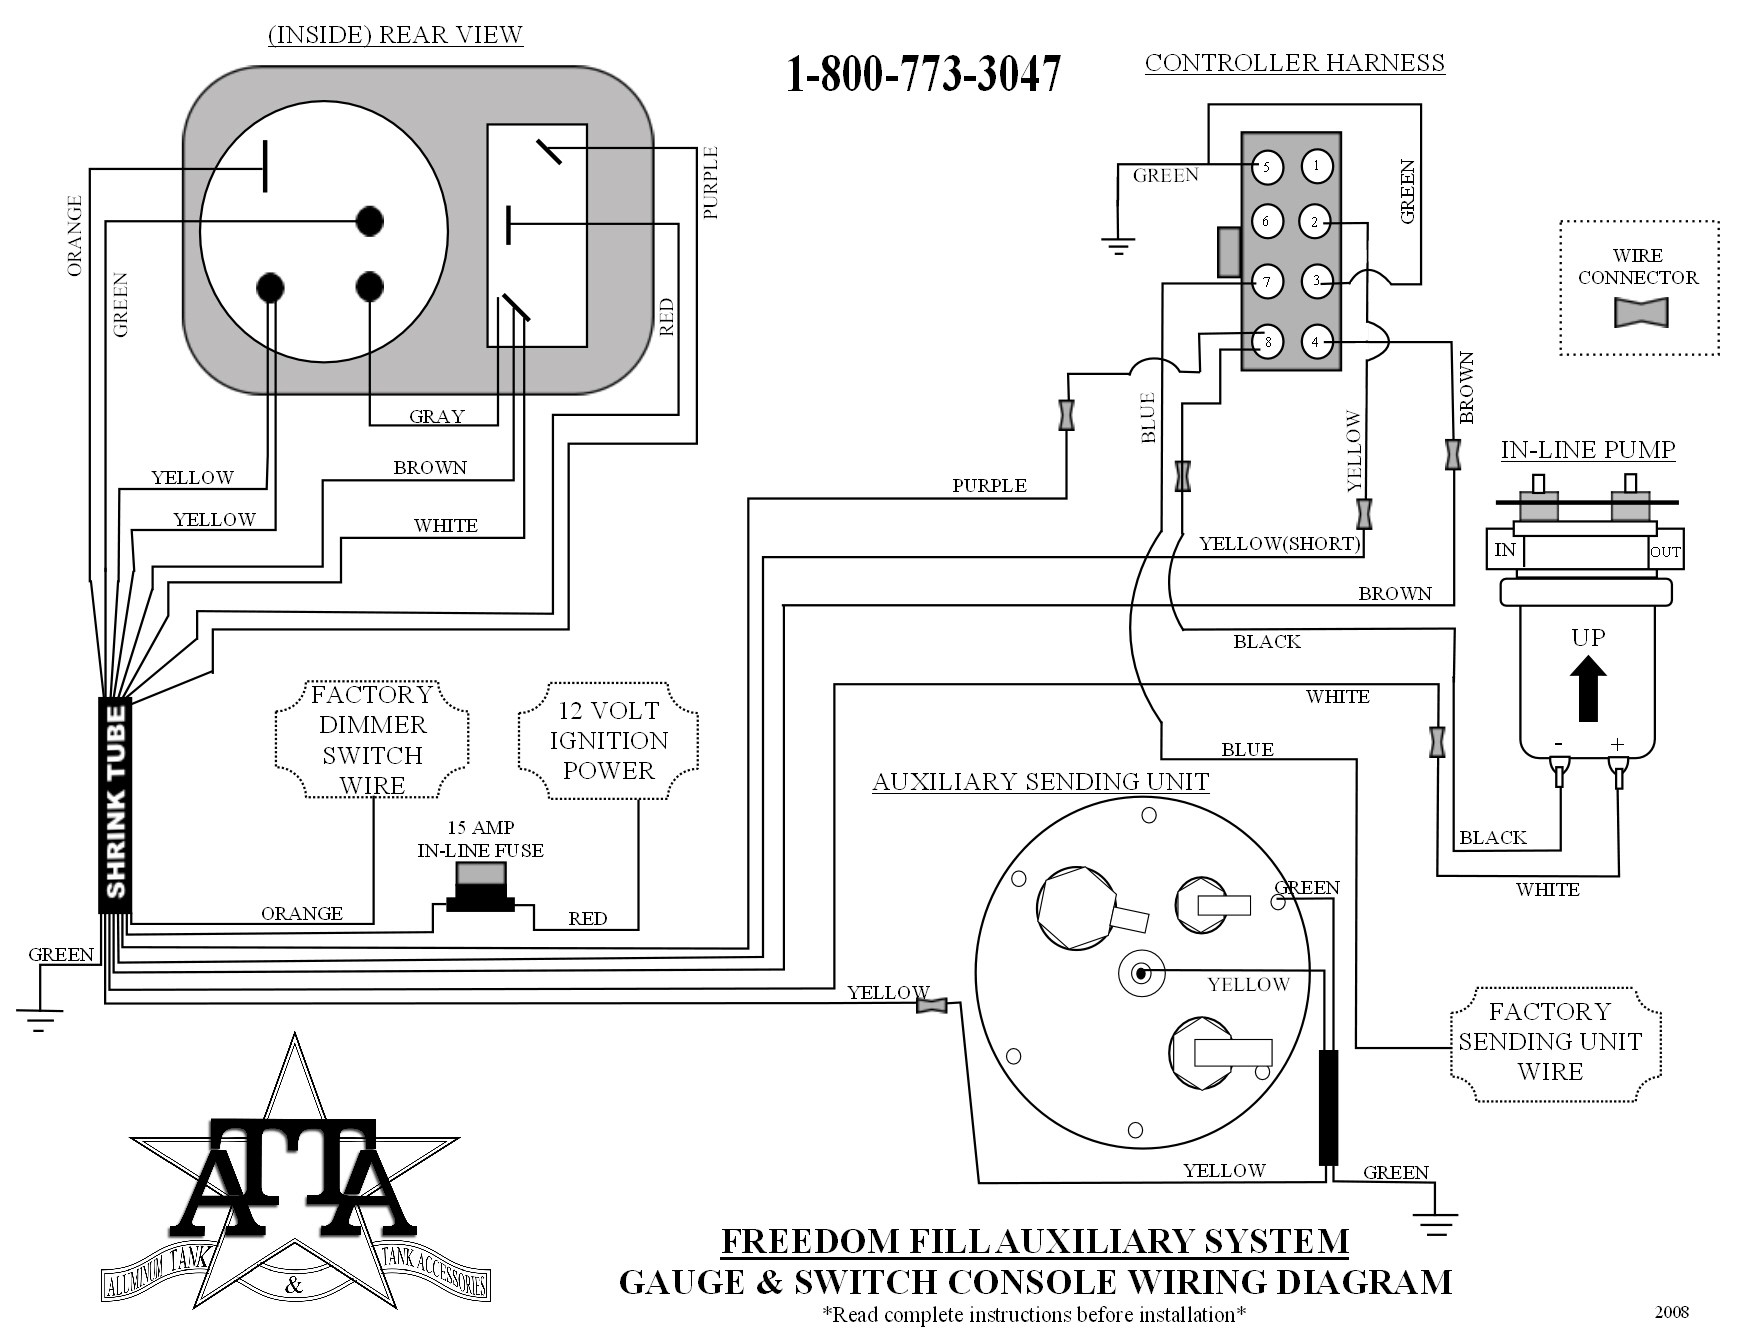 Fuel Cell Sending Unit Wiring Diagram Solutions 68 Camaro Image